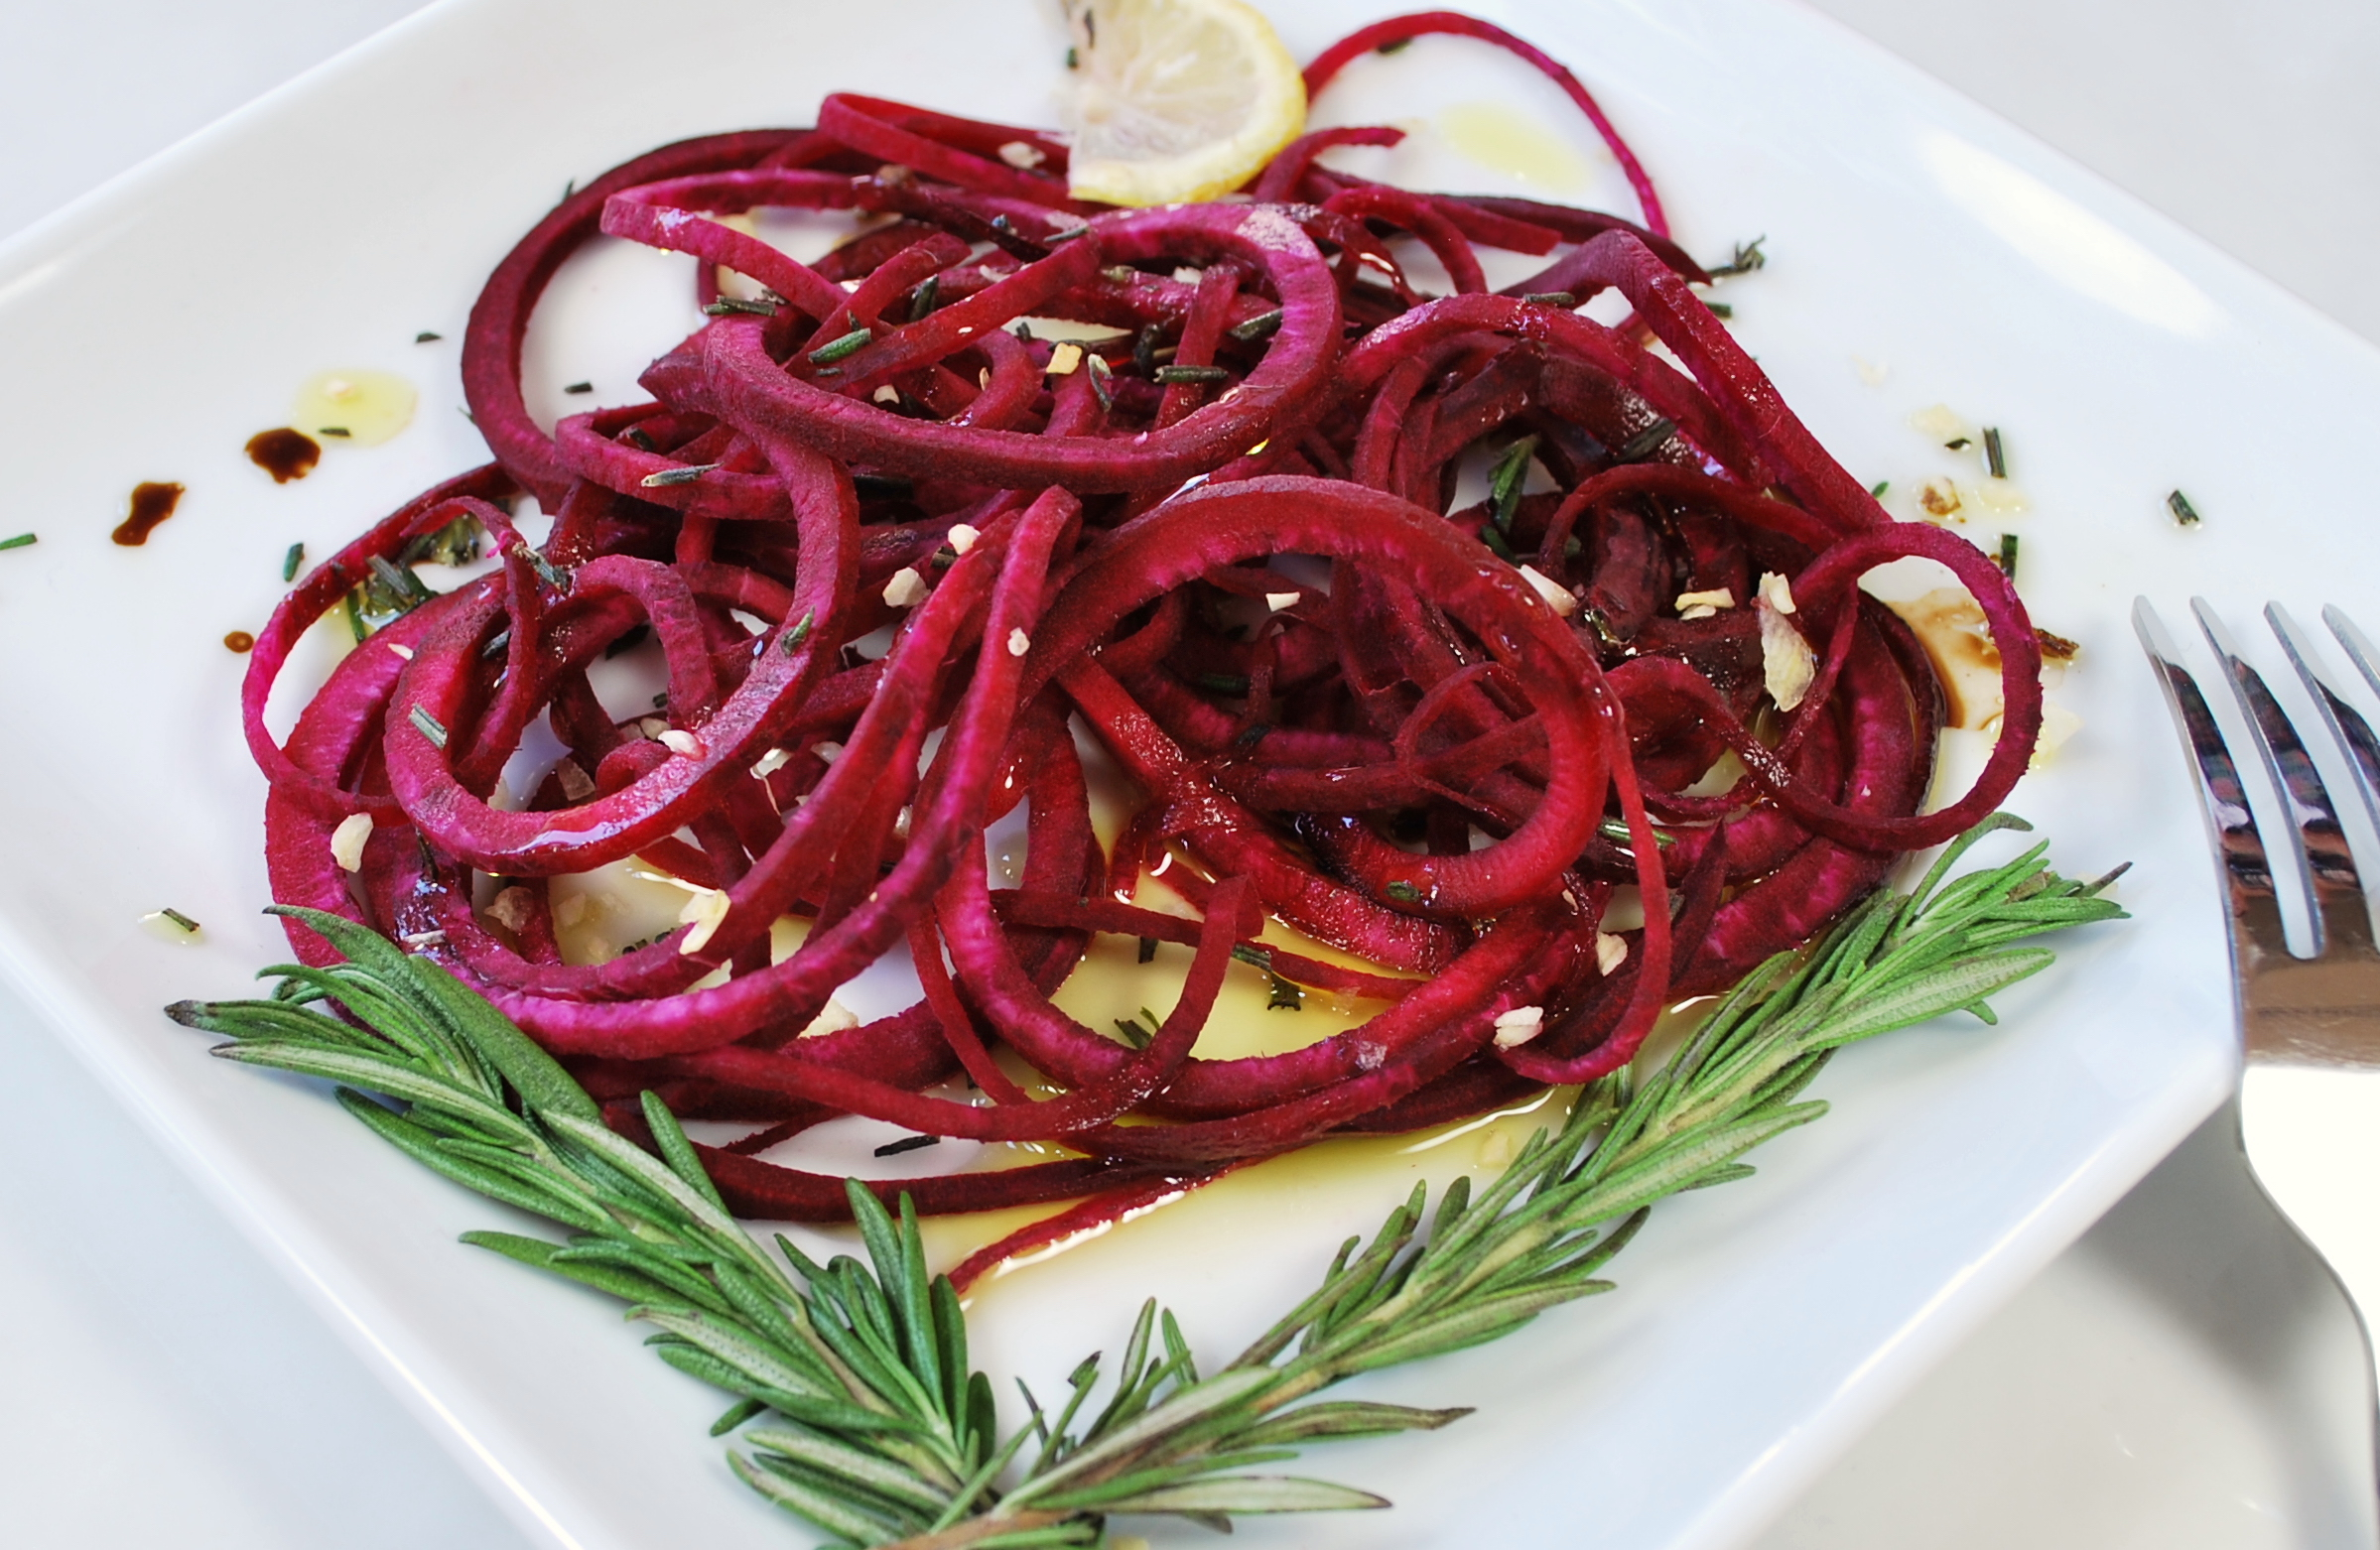 spiralizing recipes - salads, weight loss - beet salad